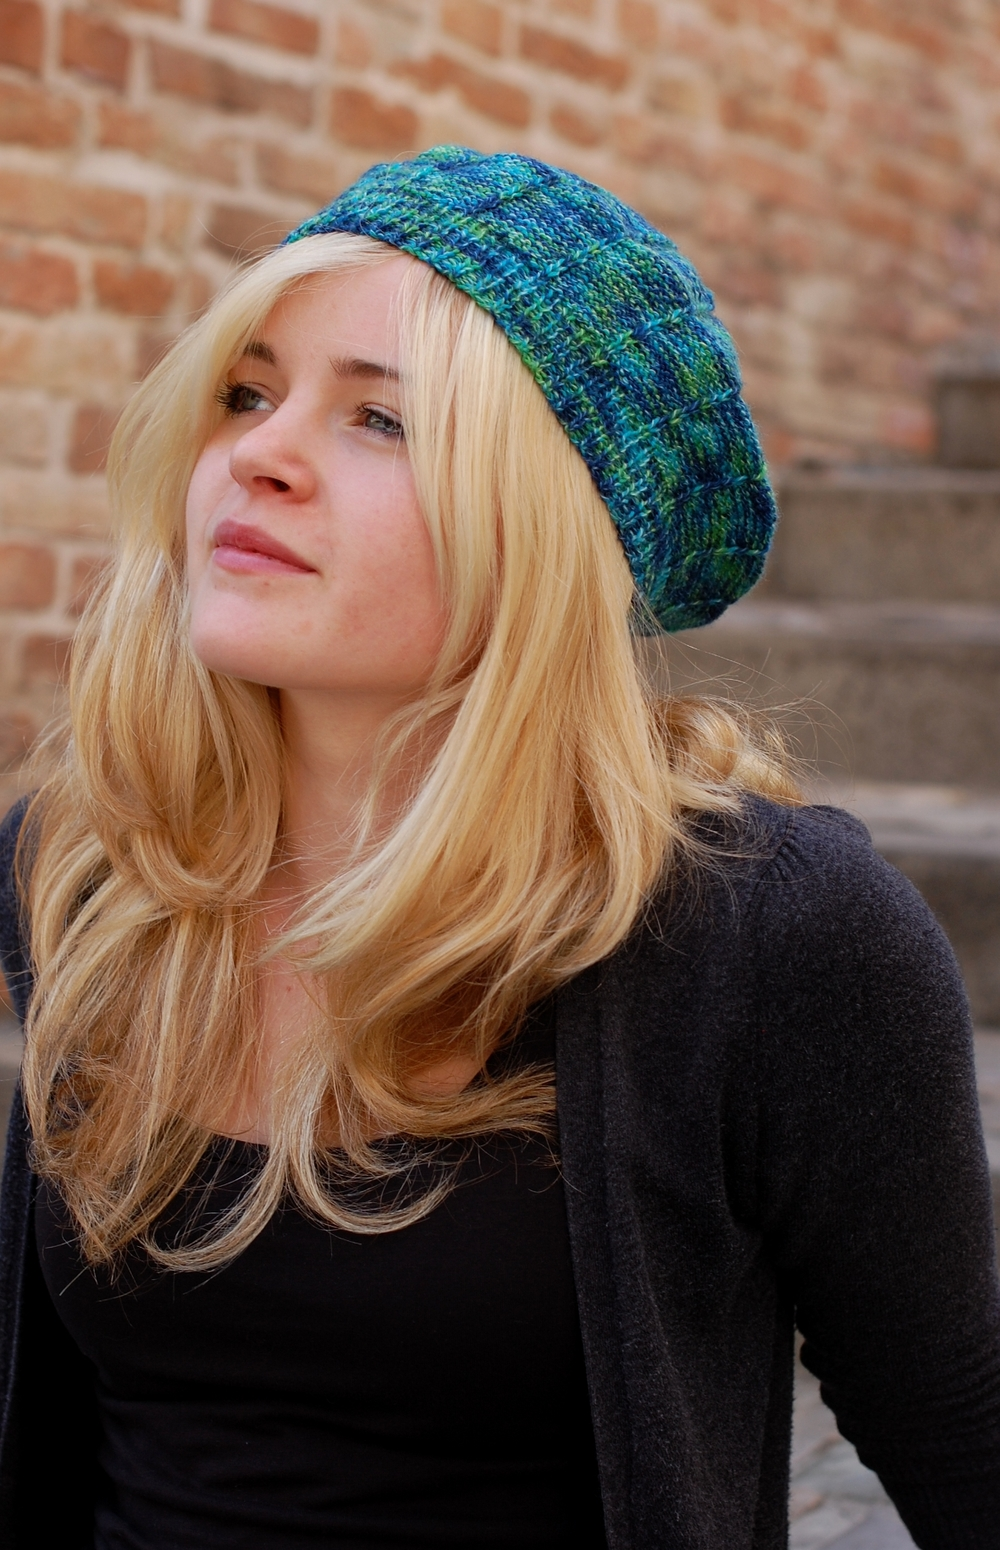 Radial variegated beret knitting pattern